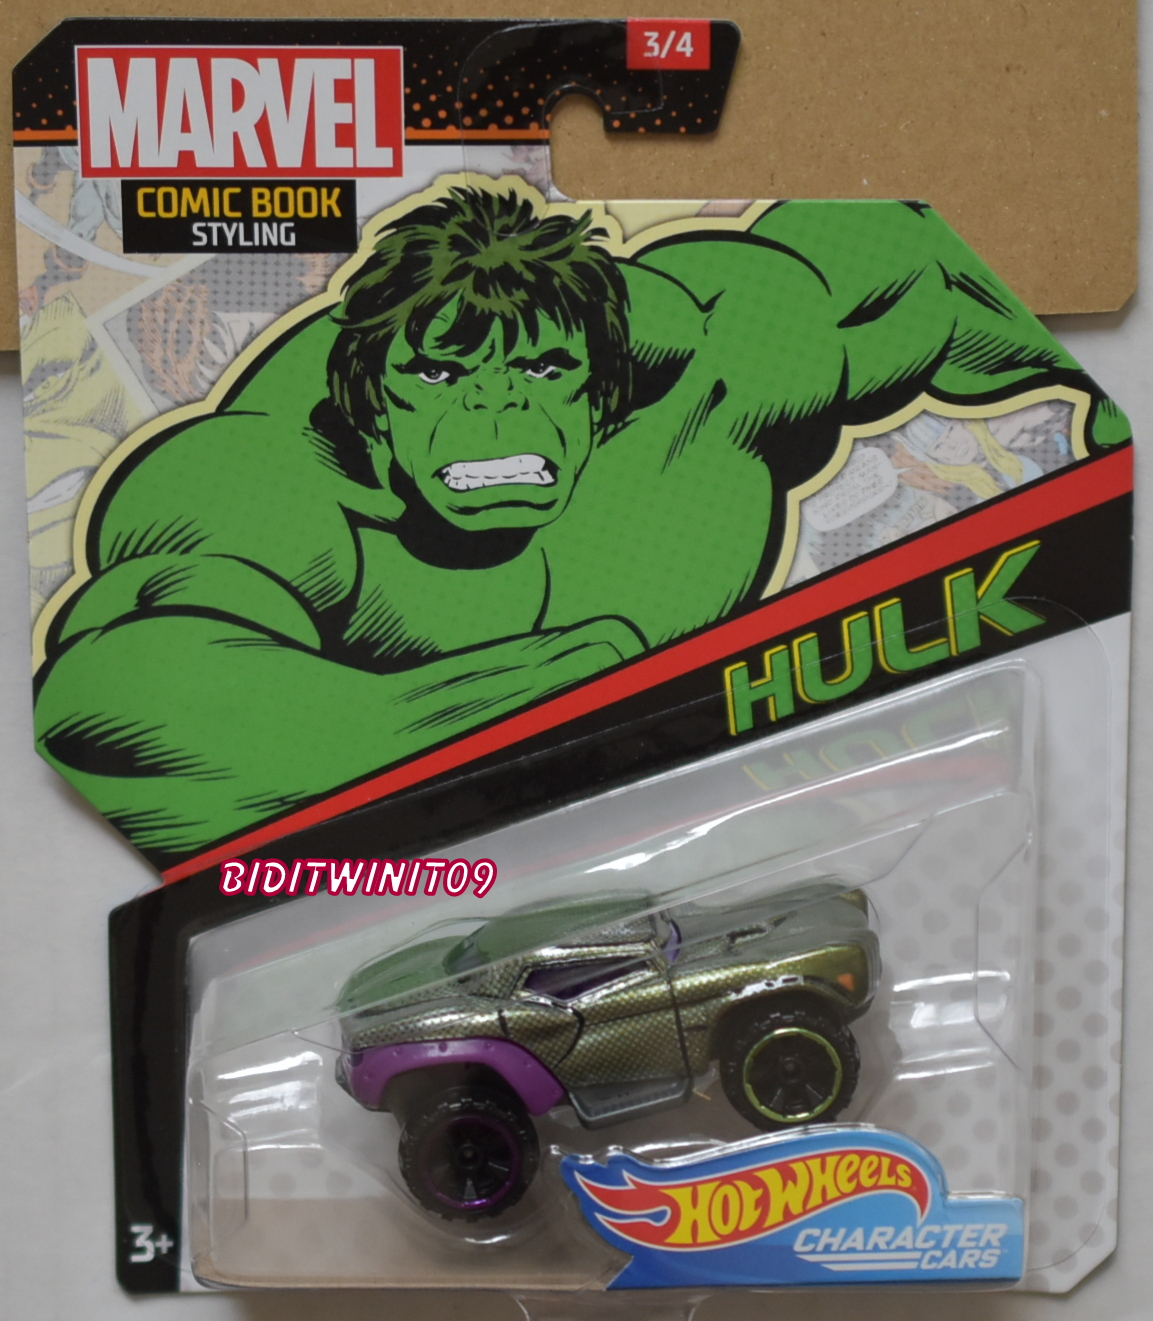 HOT WHEELS MARVEL COMIC BOOK STYLING HULK CHARACTER CARS